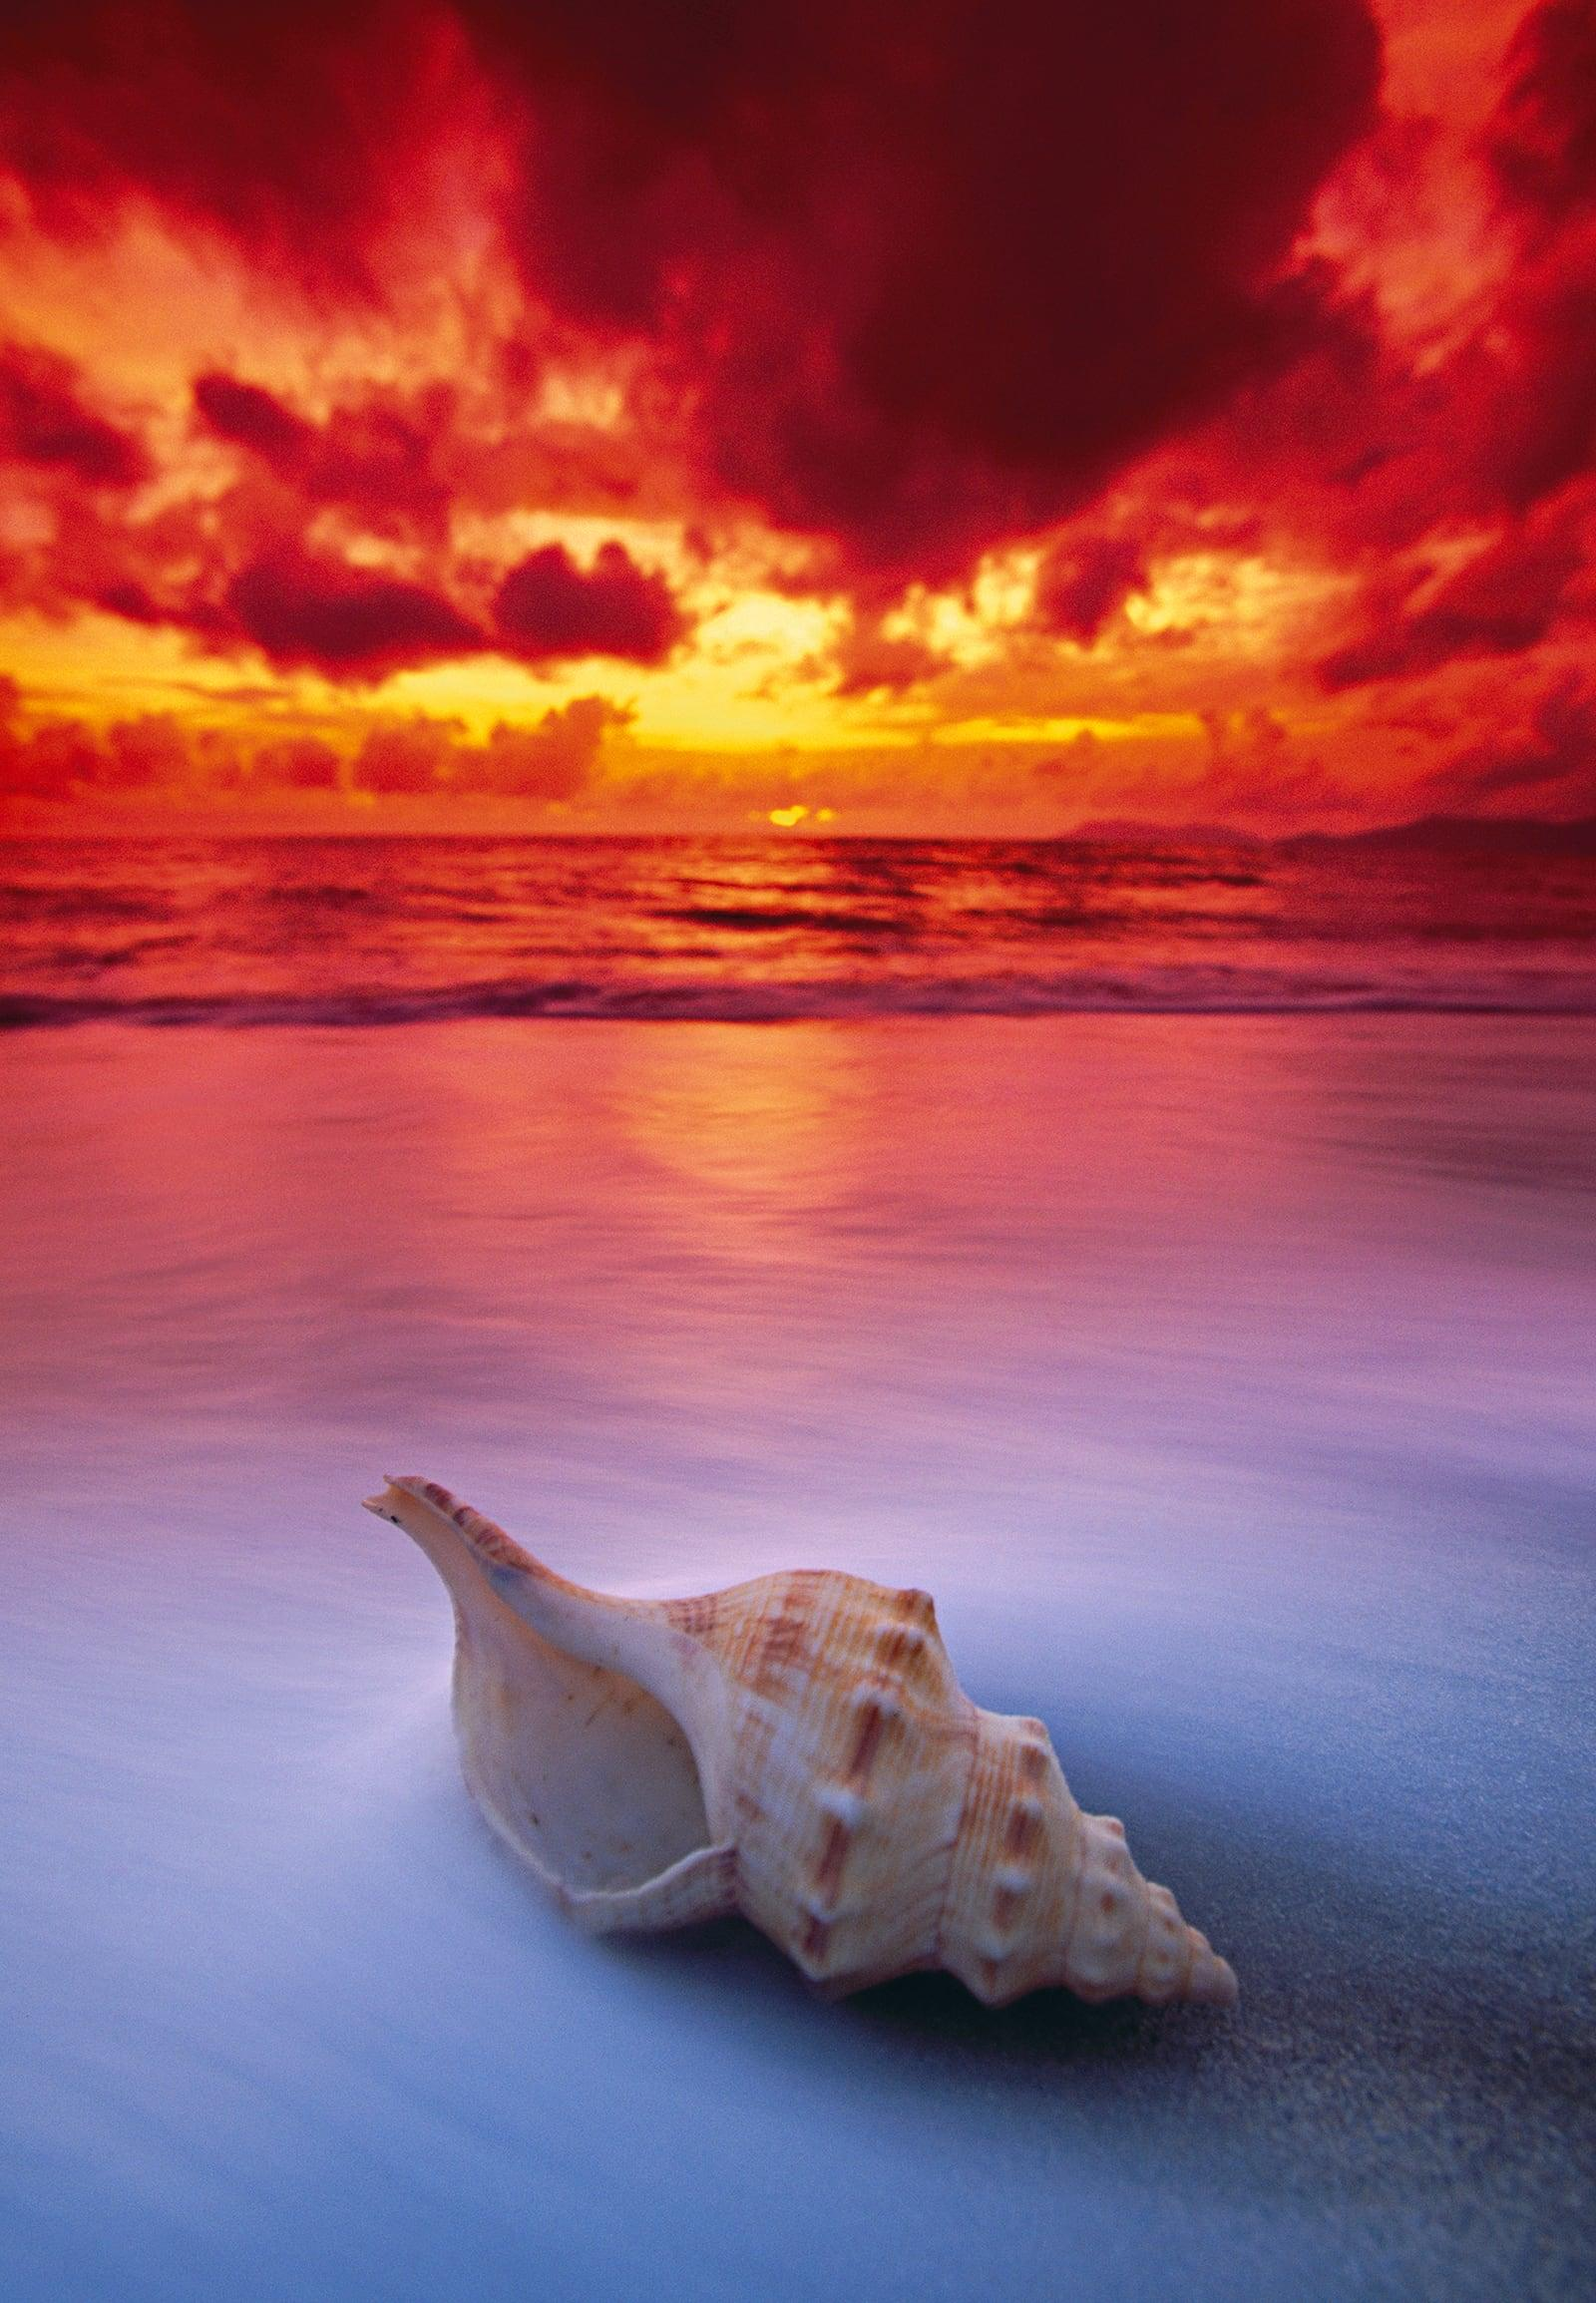 Conch shell on Holloways Beach, Australia during under the red cloudy sky at sunset